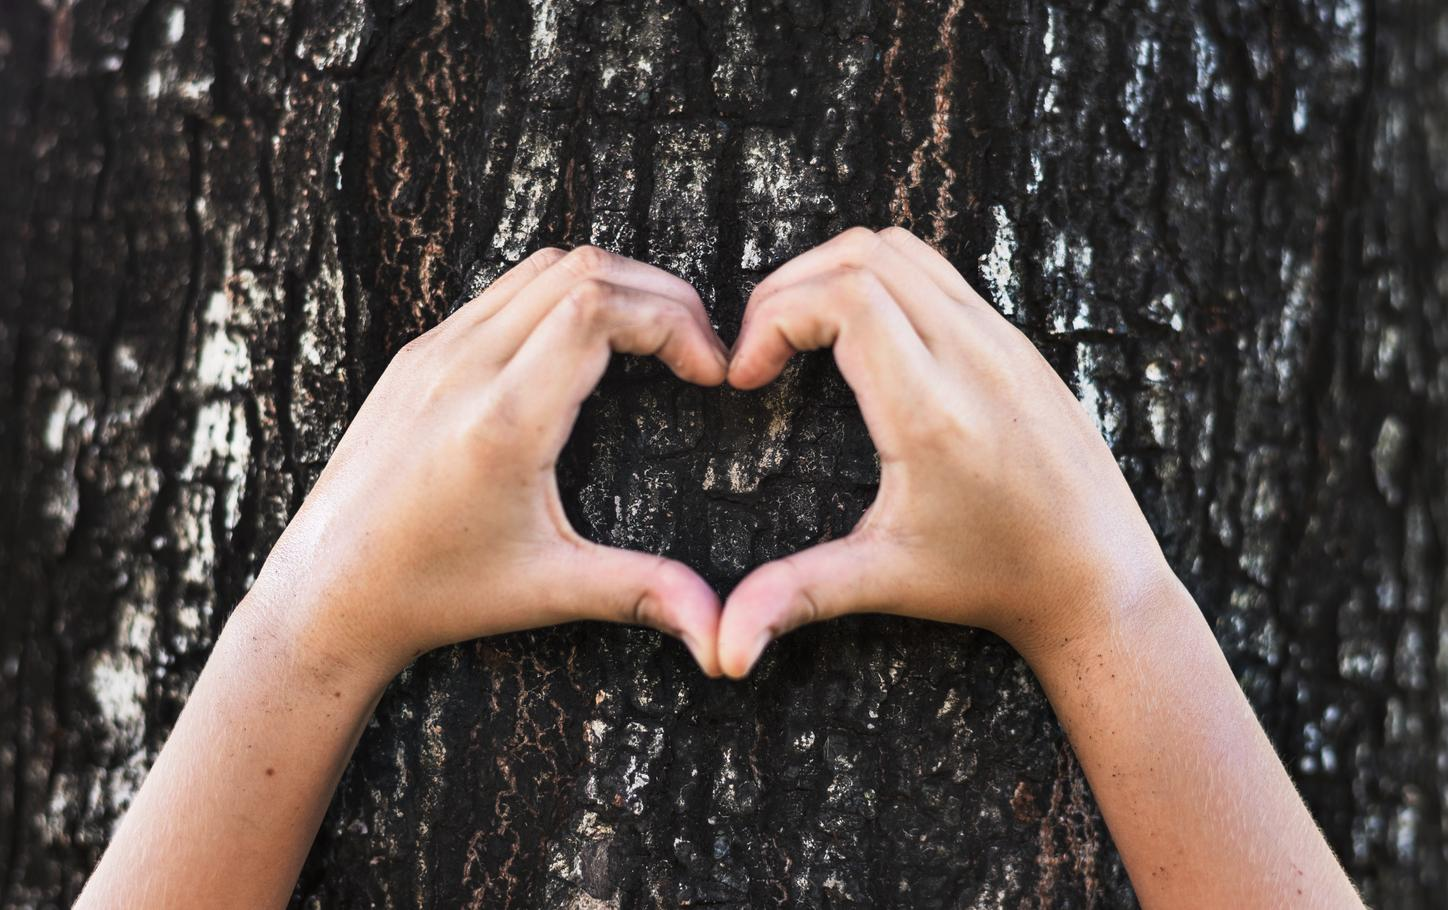 The image shows hands forming a heart in front of a tree.